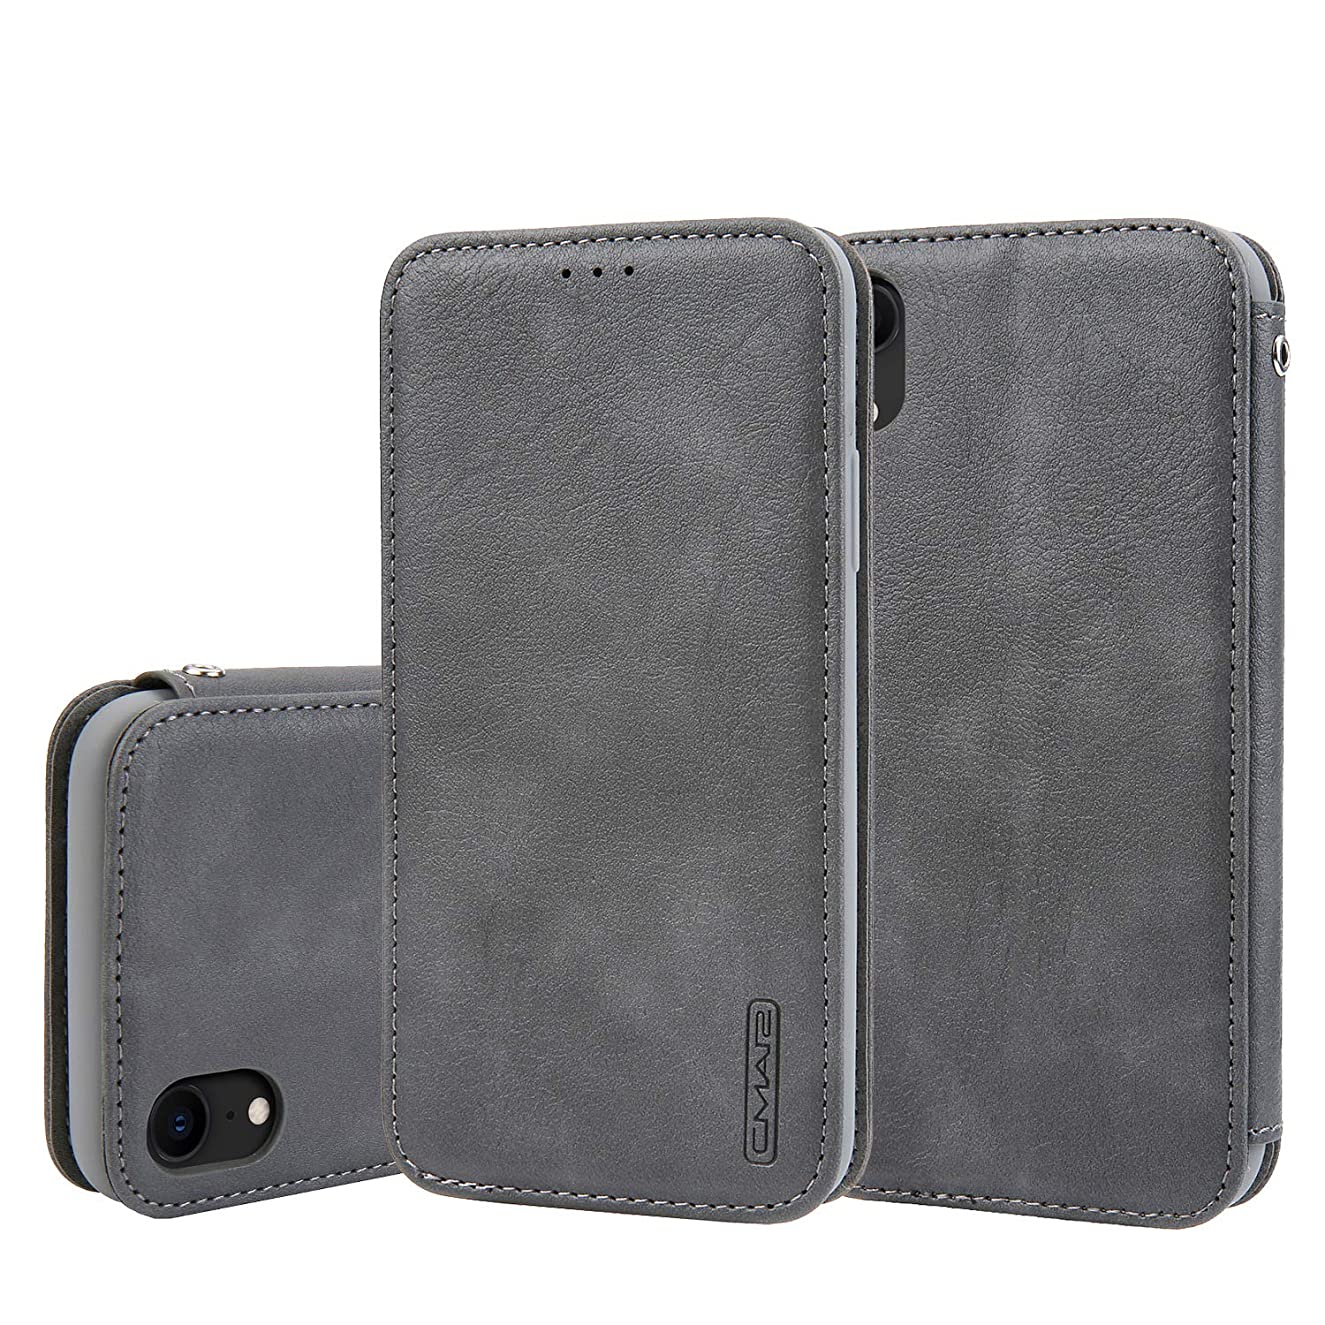 Flip Case Cover Compatible with iPhone XR 6.1inch Gray Leather Business Thin/Slim Holder Card Slot (ID Card,Credit Card) Full Protection,Accurate Cutouts Fashion Gift Girls Boys Unisex